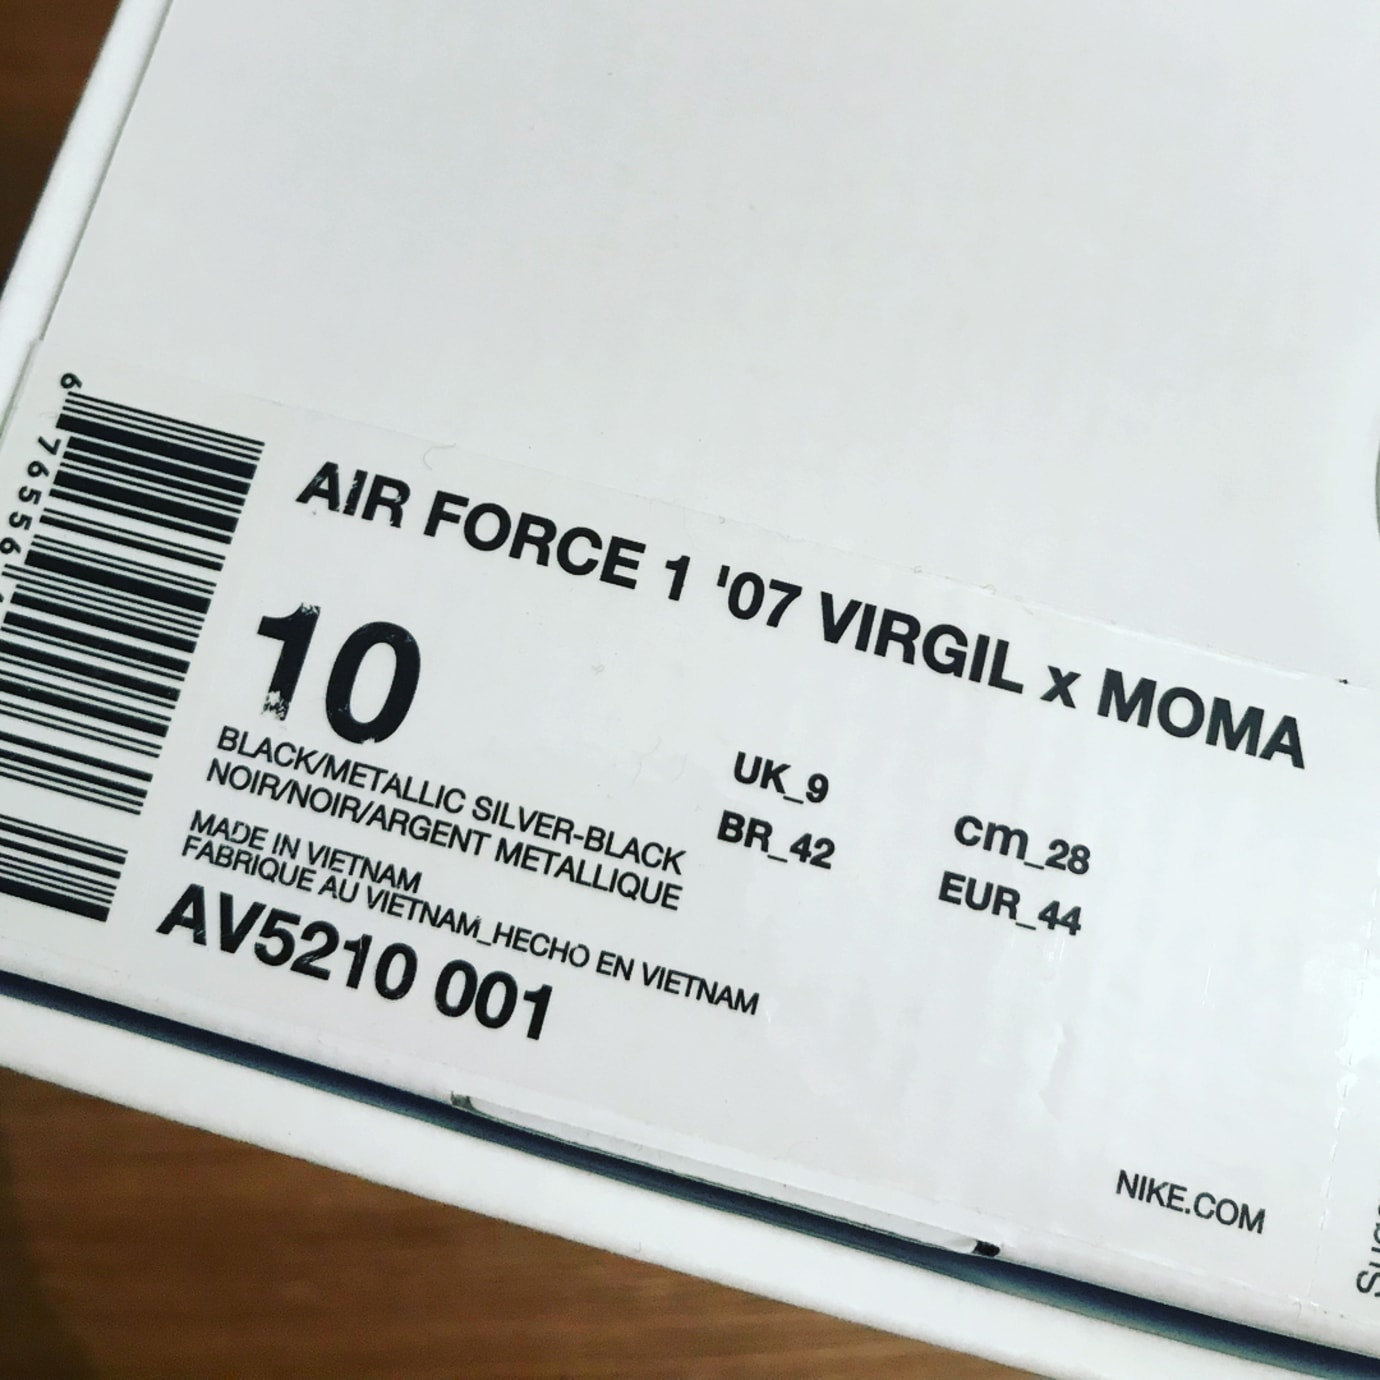 new product 8412c dc8e5 Virgil Abloh Off-white x Nike Air Force 1 Low MoMa AV5210-001 Box